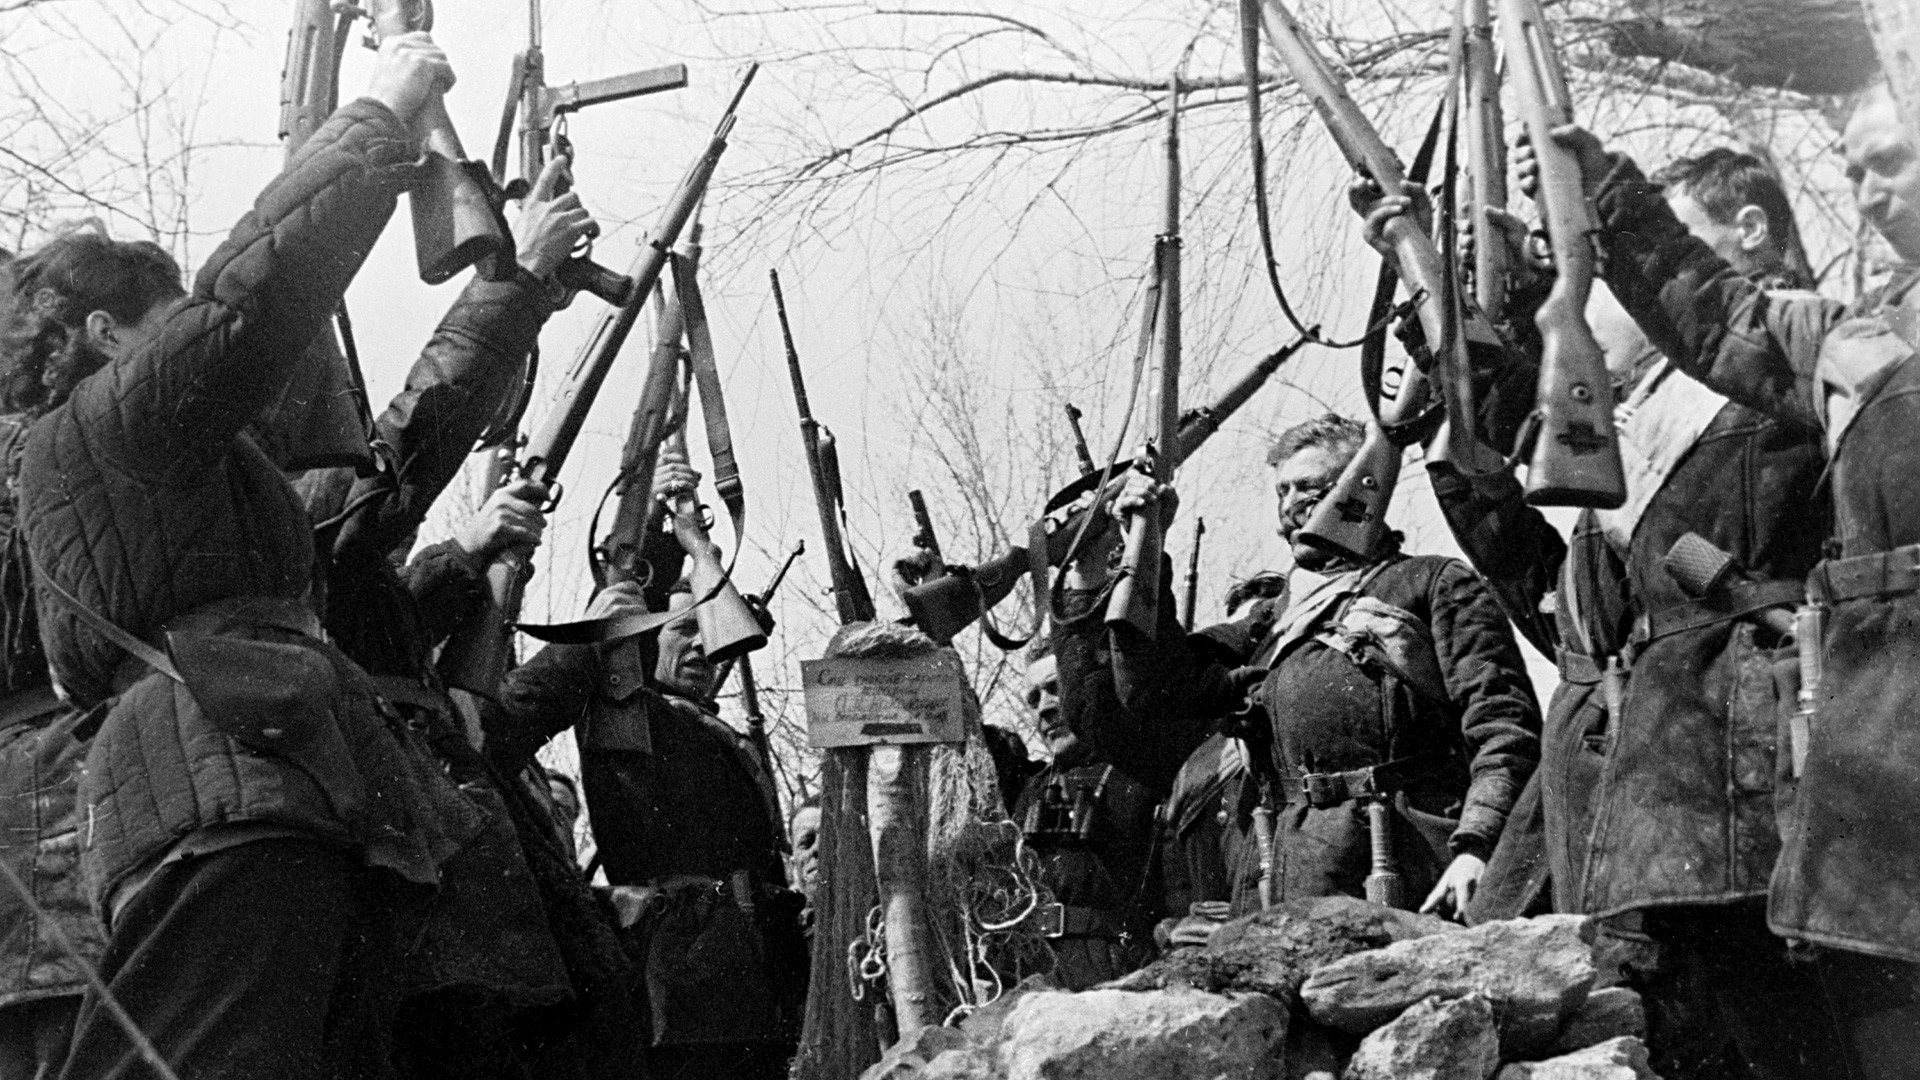 Guerrillas swearing to revenge for their comrade killed by the Nazis near his tomb.